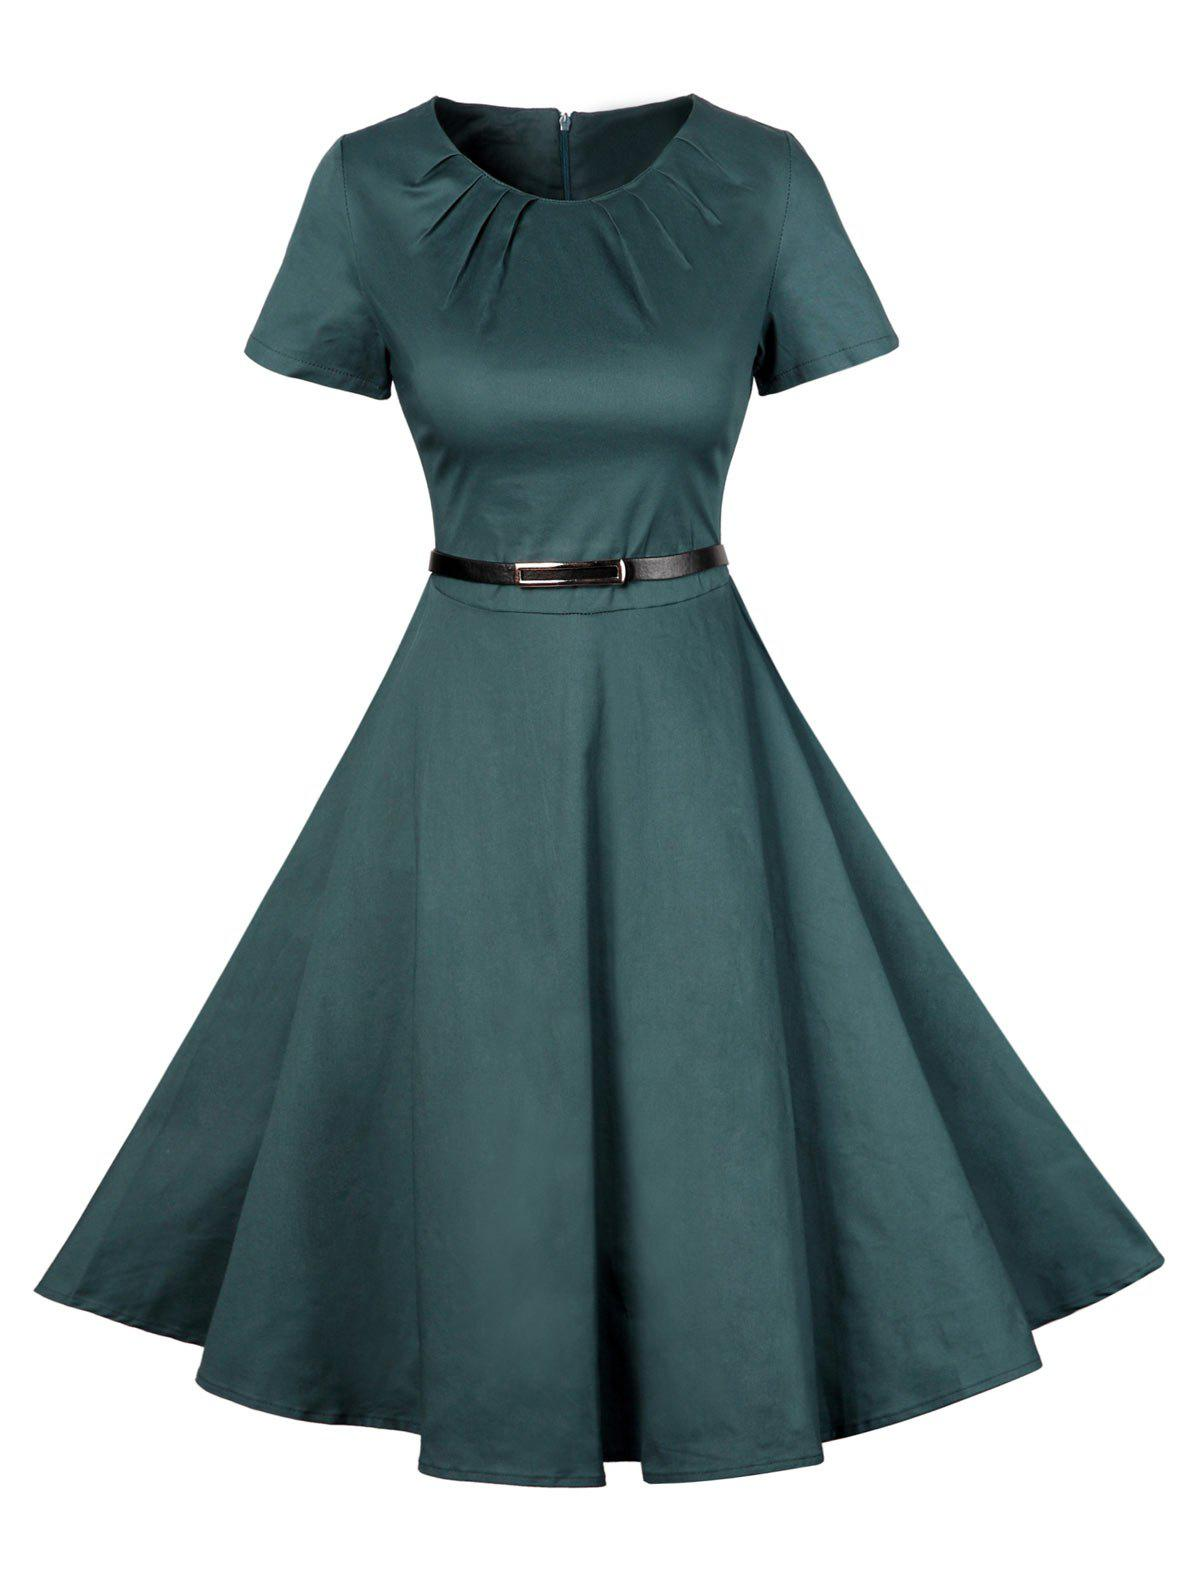 Chic Vintage Short Sleeve Swing Skater Dress